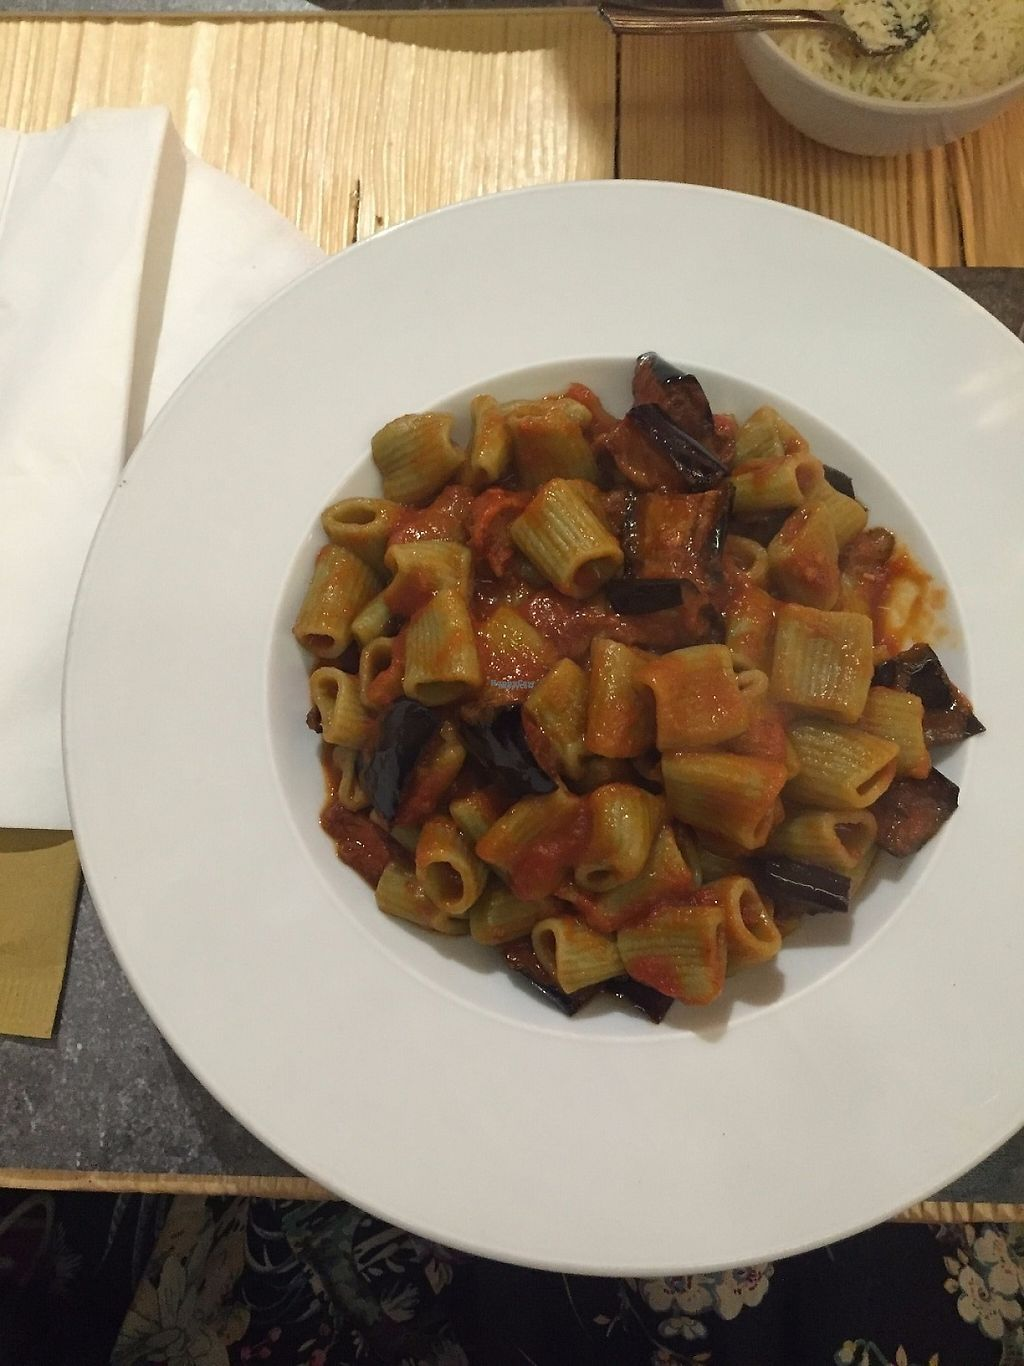 """Photo of Pastaus  by <a href=""""/members/profile/PlanetJanet"""">PlanetJanet</a> <br/>Pasta made from spinach with tomato sauce and aubergine <br/> April 3, 2017  - <a href='/contact/abuse/image/89414/244443'>Report</a>"""